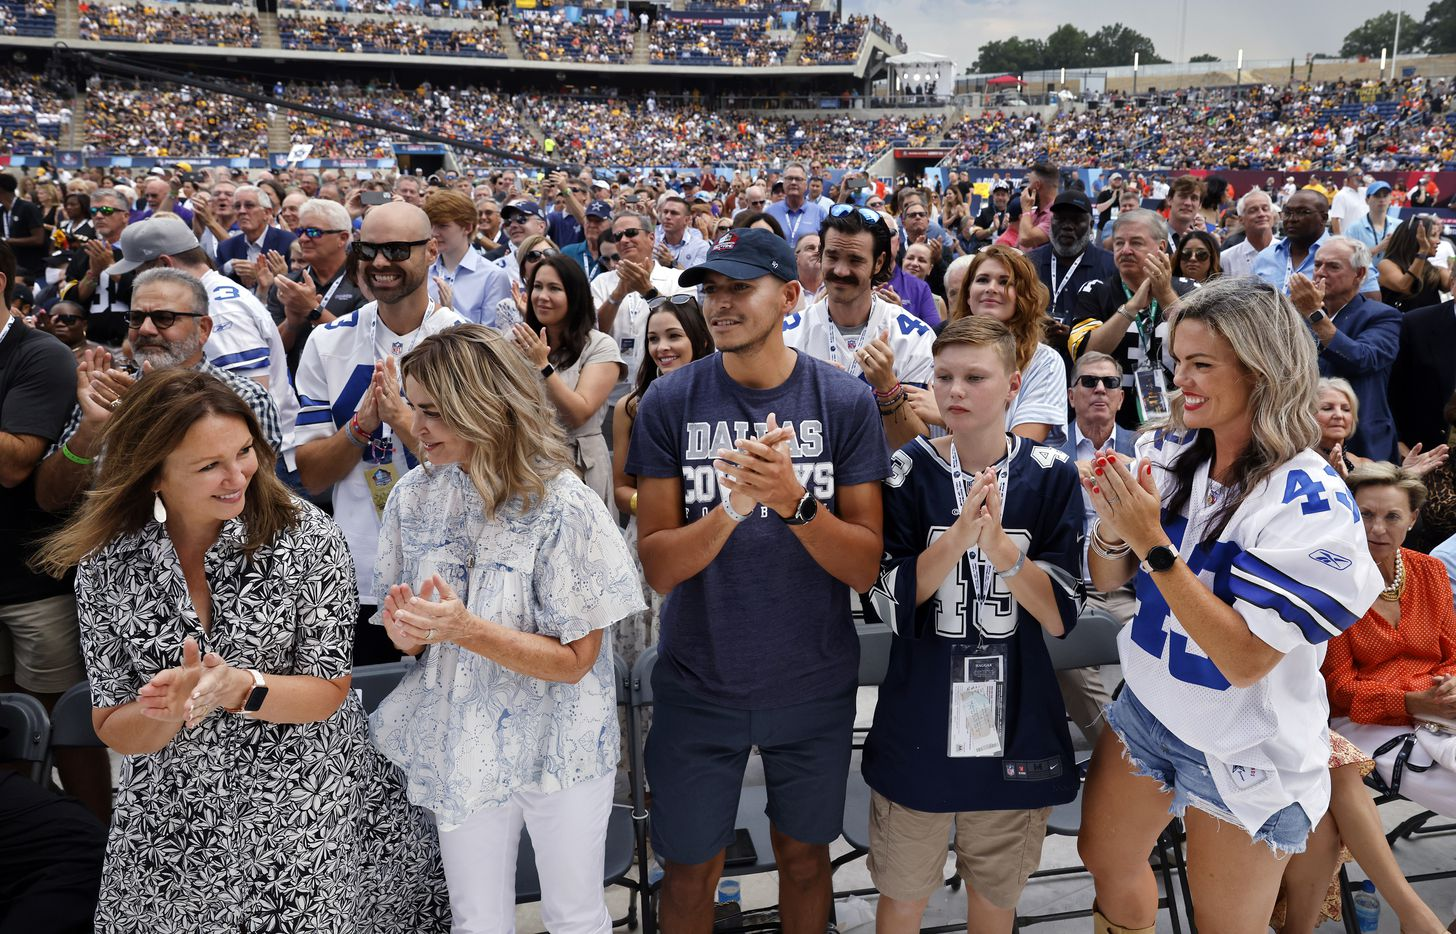 Dallas Cowboys player and Pro Football Hall of Fame inductee Cliff Harris' wife Karen Harris (left) applaud her husband alongside Rosie Waters (wife of presenter Charlie Waters), Christian Mendez, Kingston Harris and his mother Alden Harris (right) following the former Cowboy's speech at the Centennial Class of 2020 enshrinement ceremony at Tom Benson Hall of Fame Stadium in Canton, Ohio, Saturday, August 7, 2021. (Tom Fox/The Dallas Morning News)